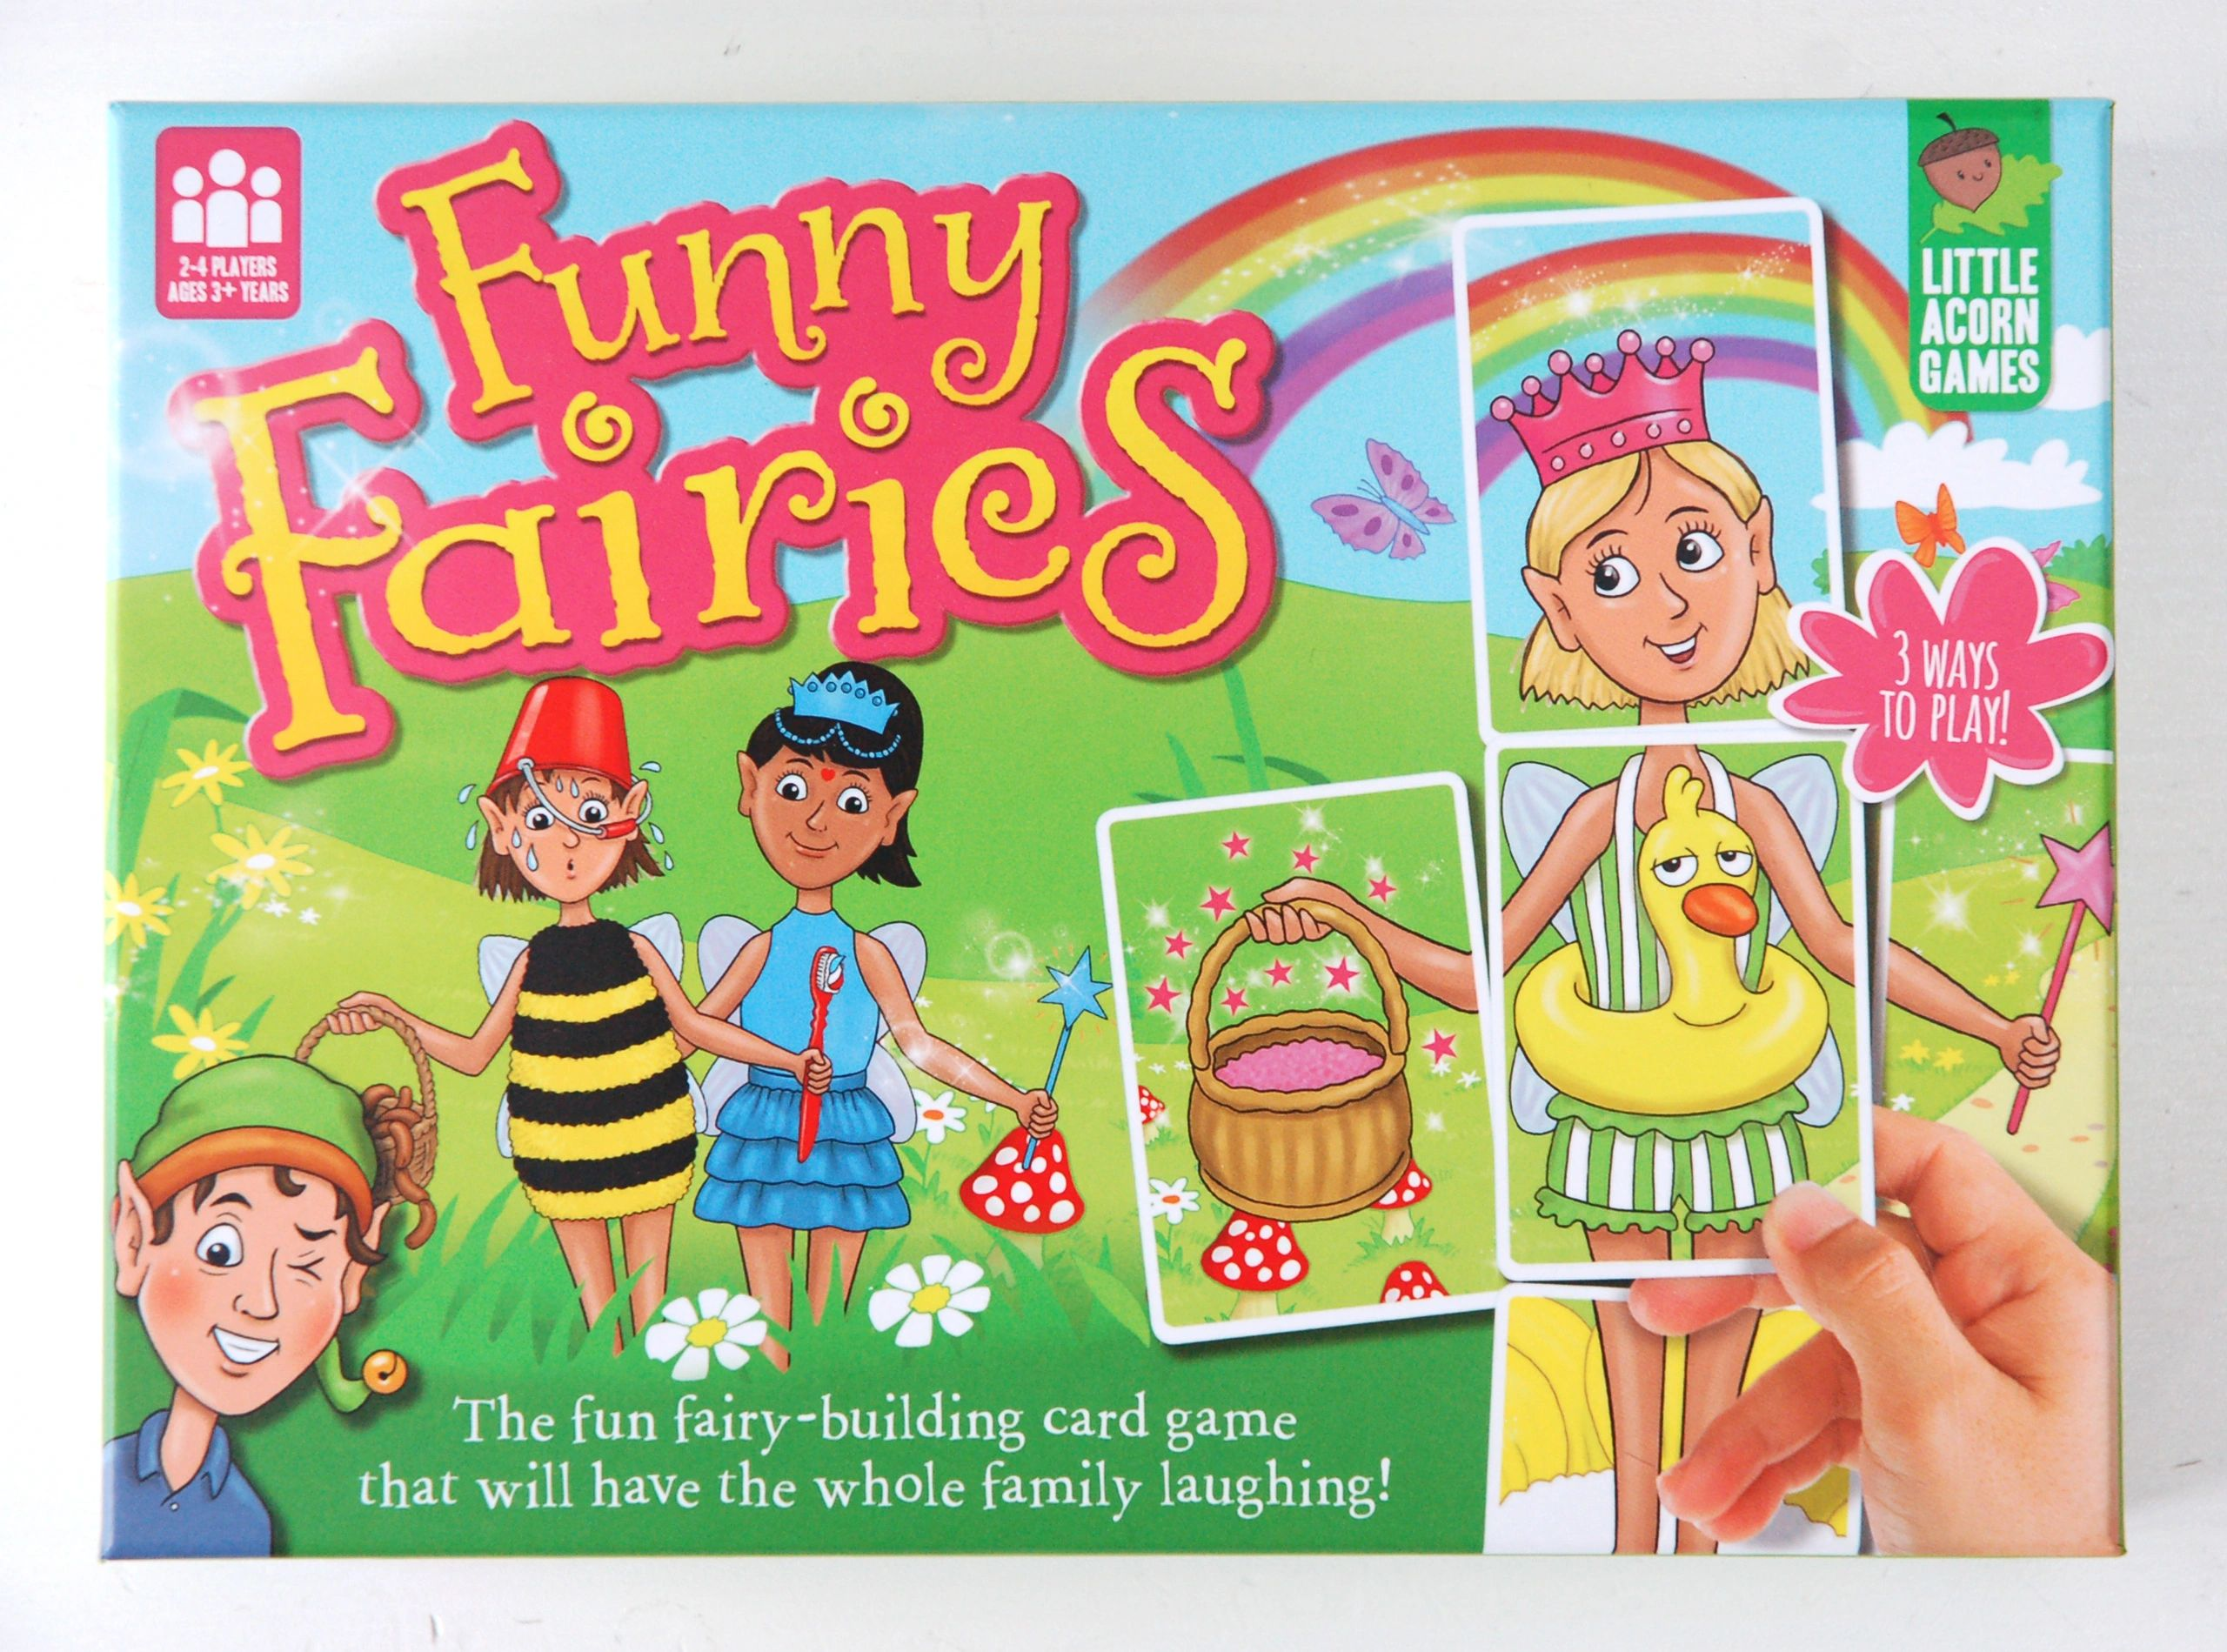 Funny Fairies children's board game box lid